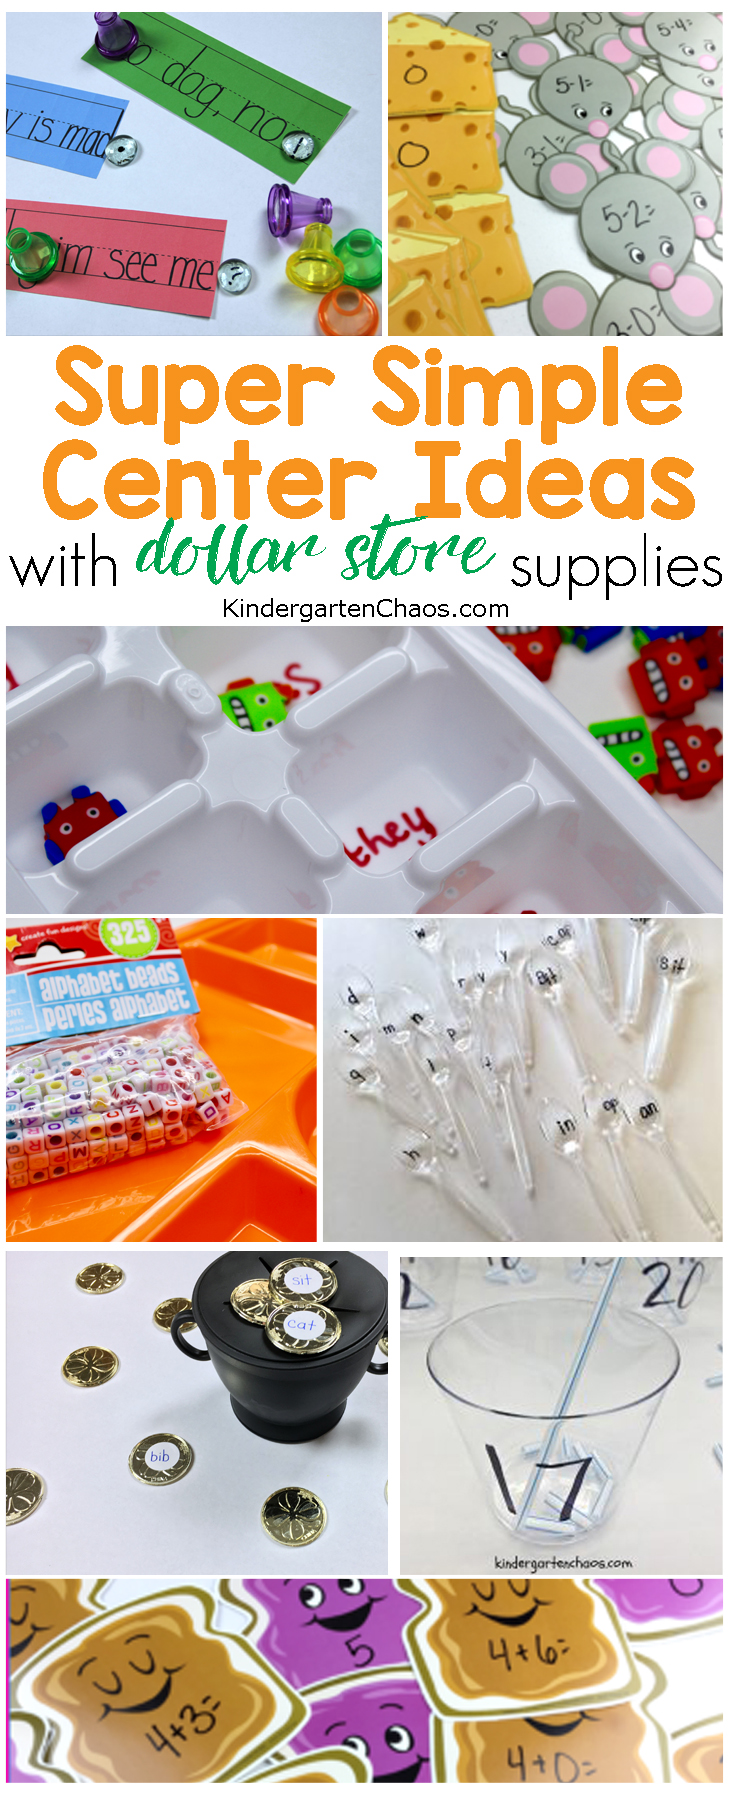 12+ Super Simple Center Ideas For Your Kindergarten Class All With Dollar Store Supplies!